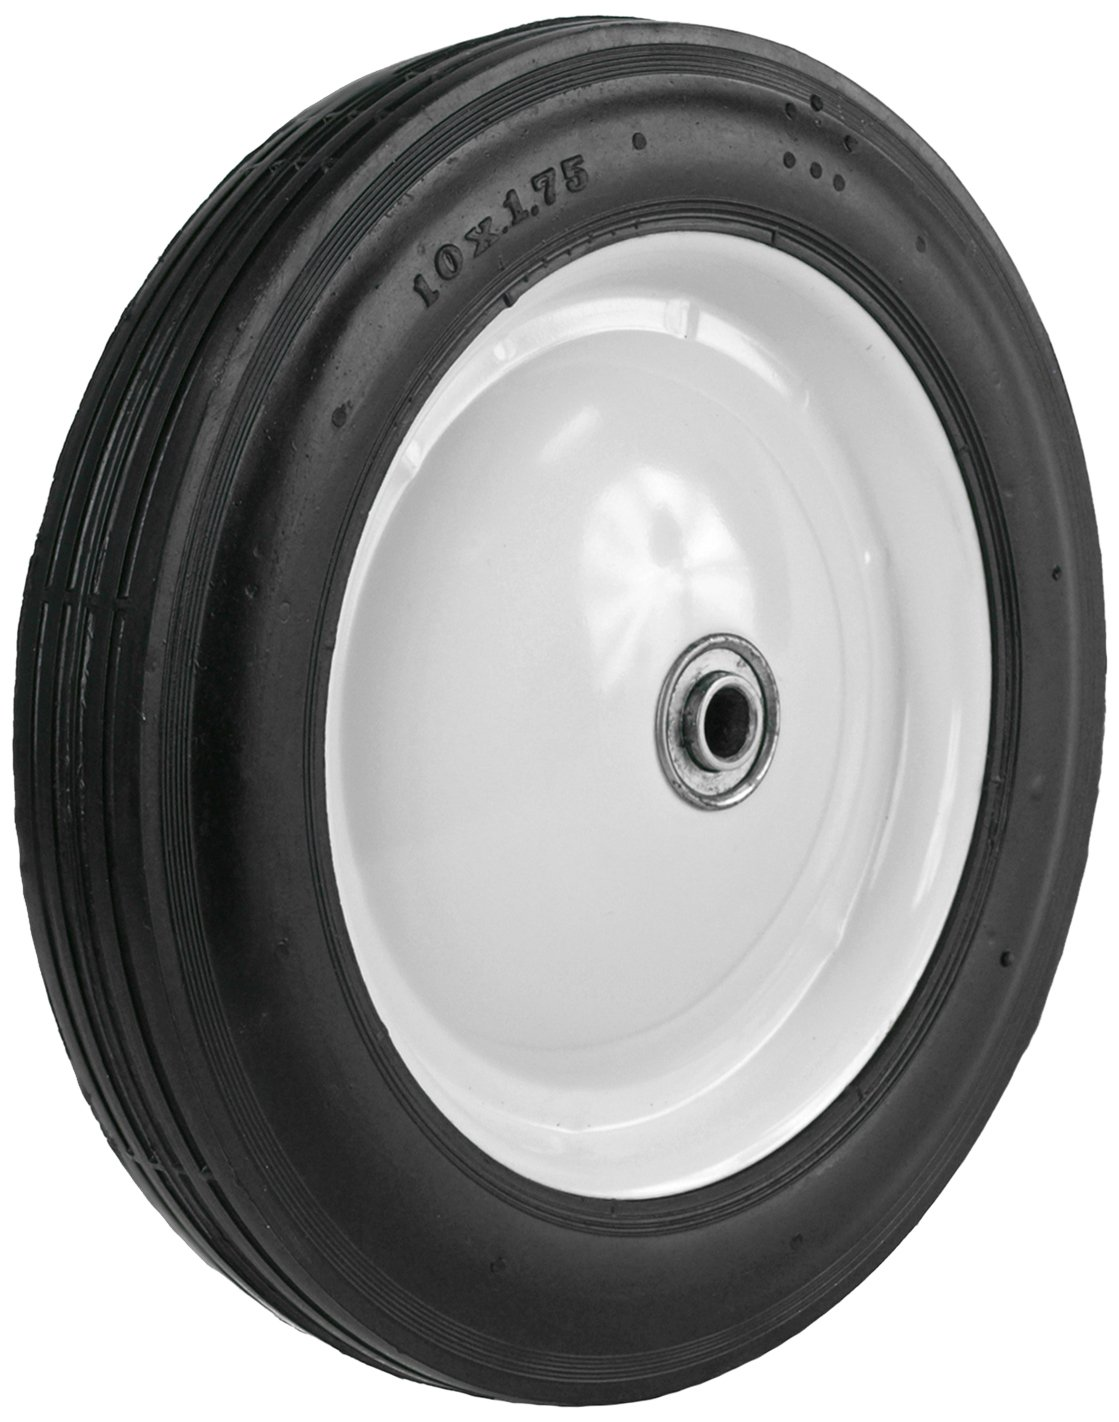 Martin Wheel 110-OF 10 by 1.75-Inch Light Duty Steel Wheel for Lawn Mower, 1/2-Inch Ball Bearing, 1-5/8-Inch Offset Hub, Rib Tread